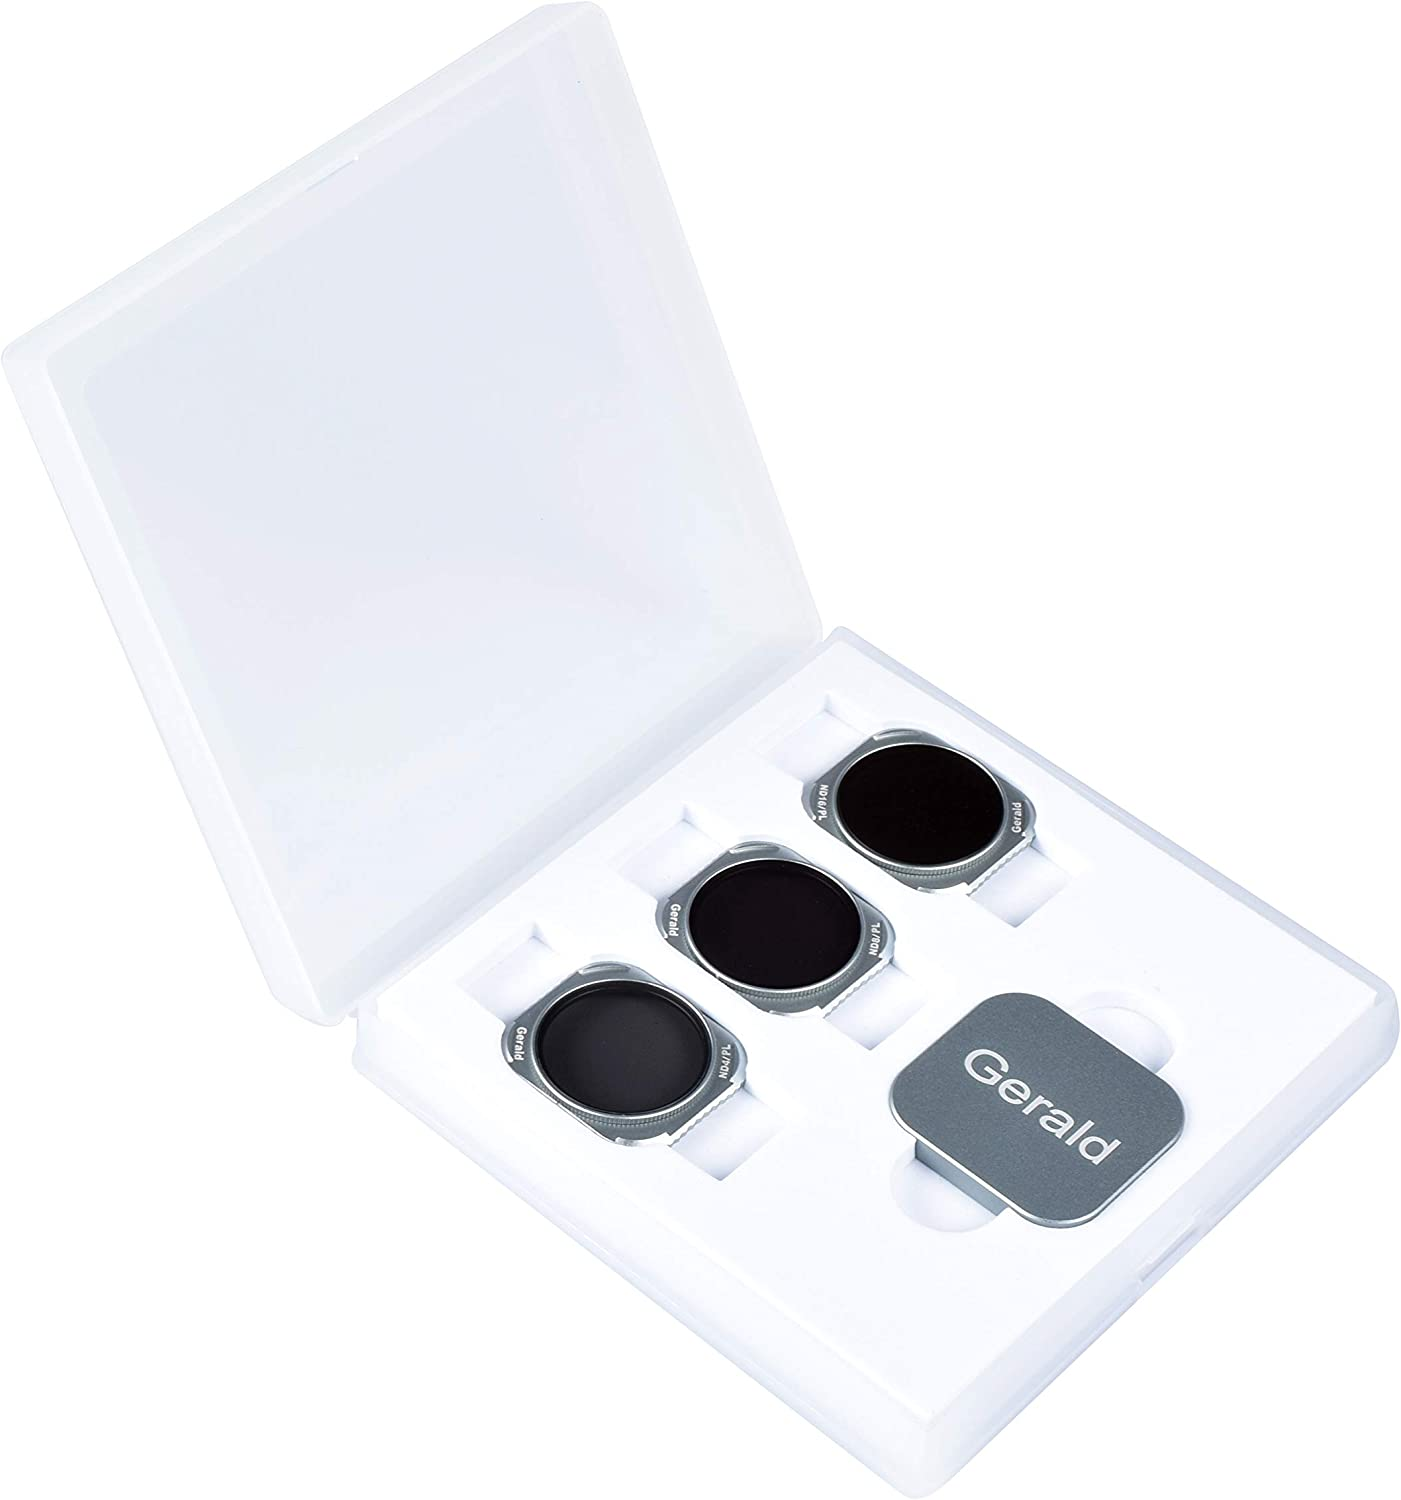 ND4, ND8,ND16,ND4//PL,ND8//PL, ND16//PL Gerald Lens ND Filters CPL Filters 6-Pack for DJI Mavic 2 II pro Latest Release Accessories Works with Gimbal Cover